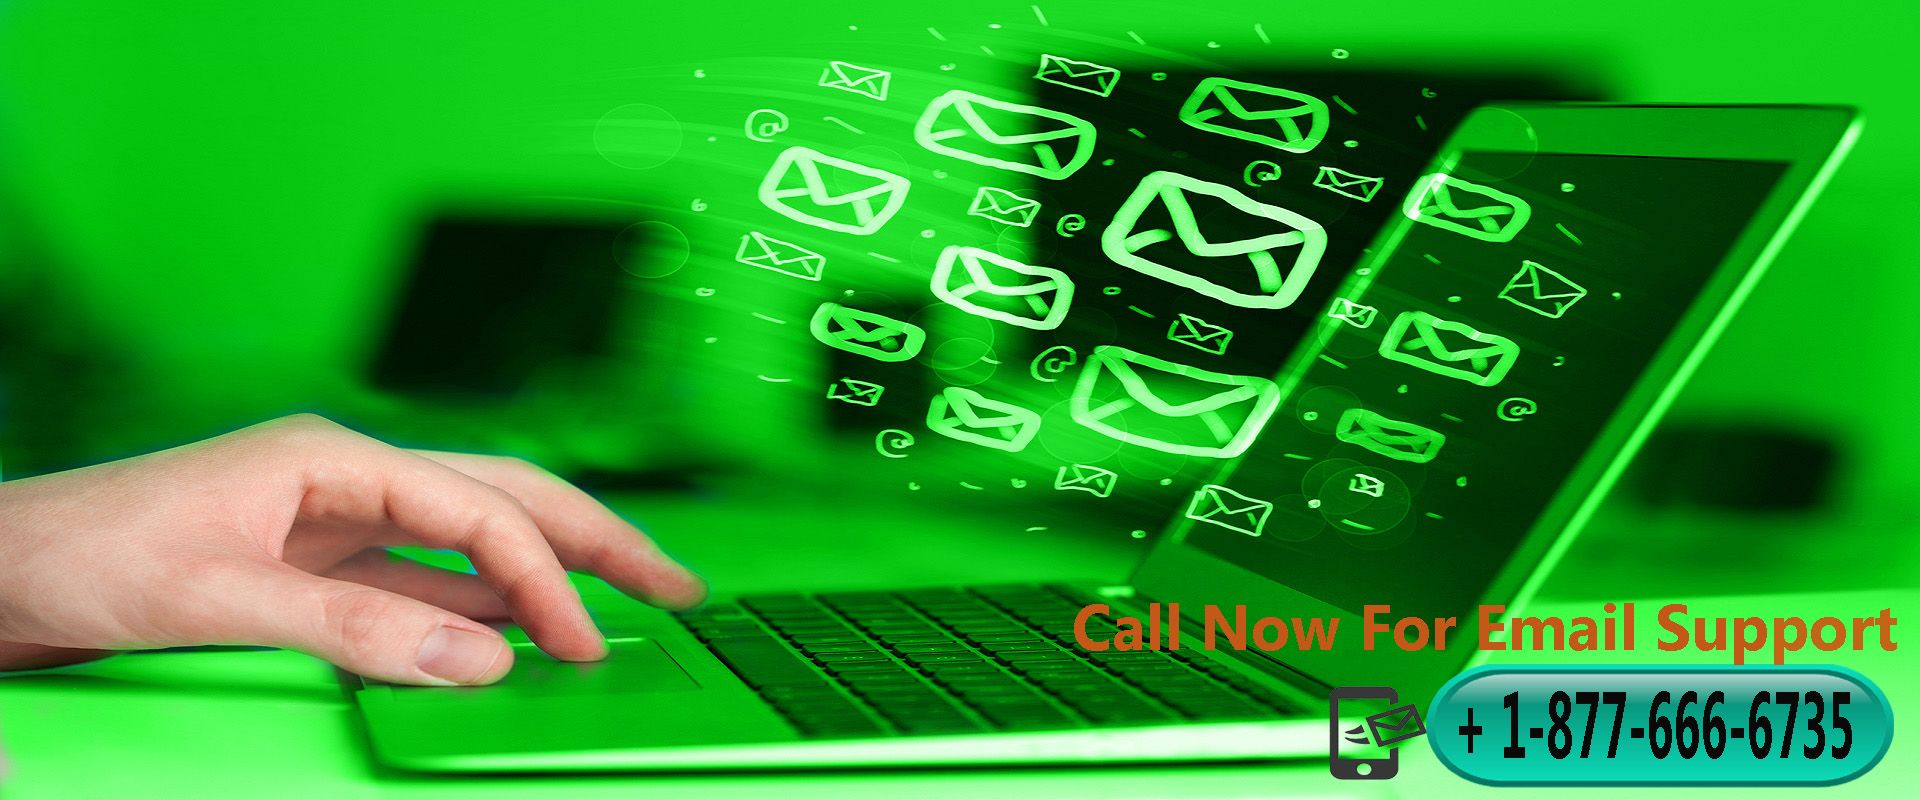 Contact us today by dialing our Outlook Support toll free